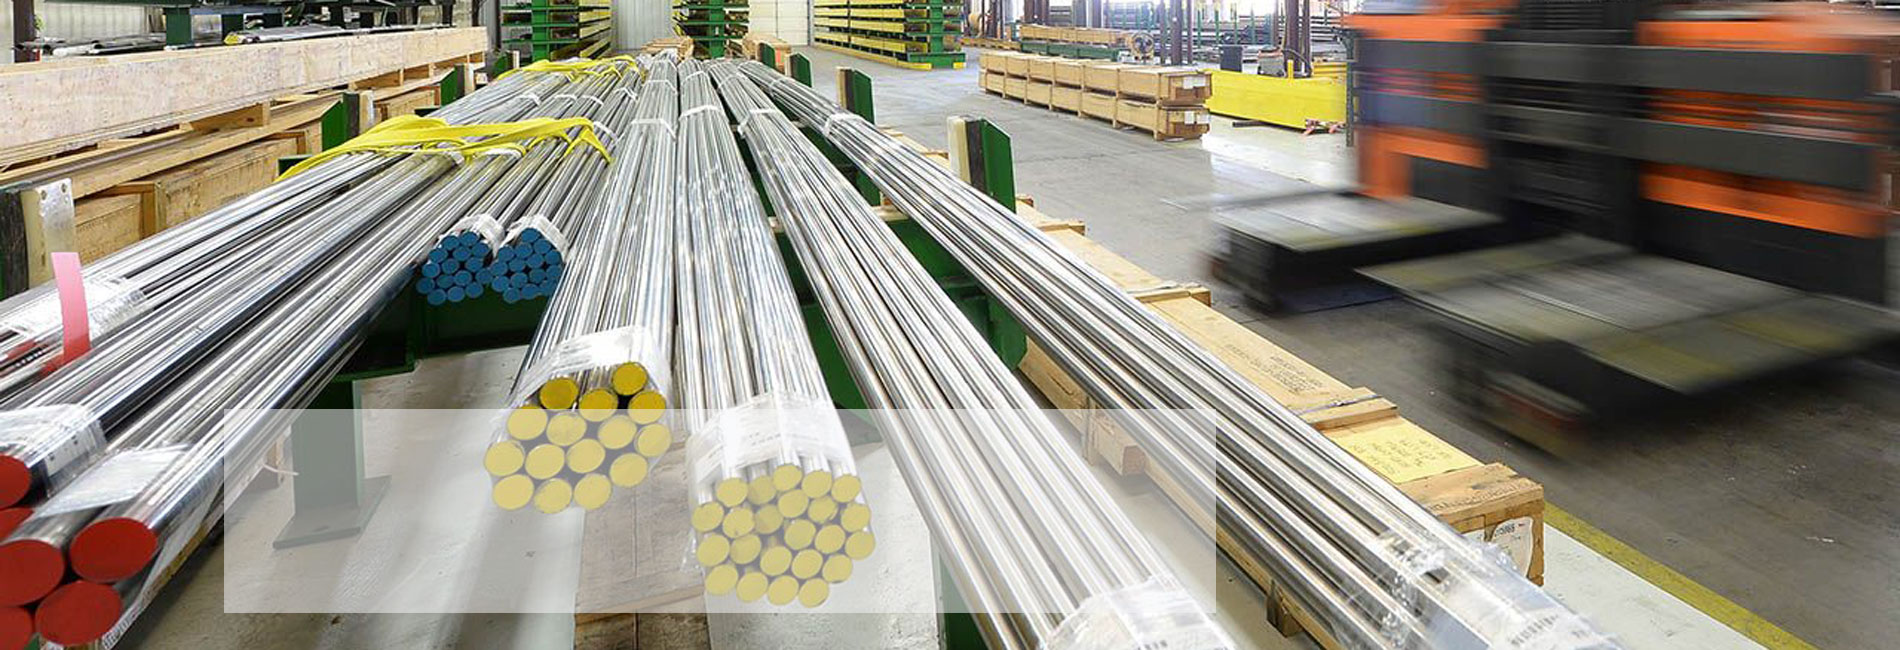 630-stainless-steel-round-bar